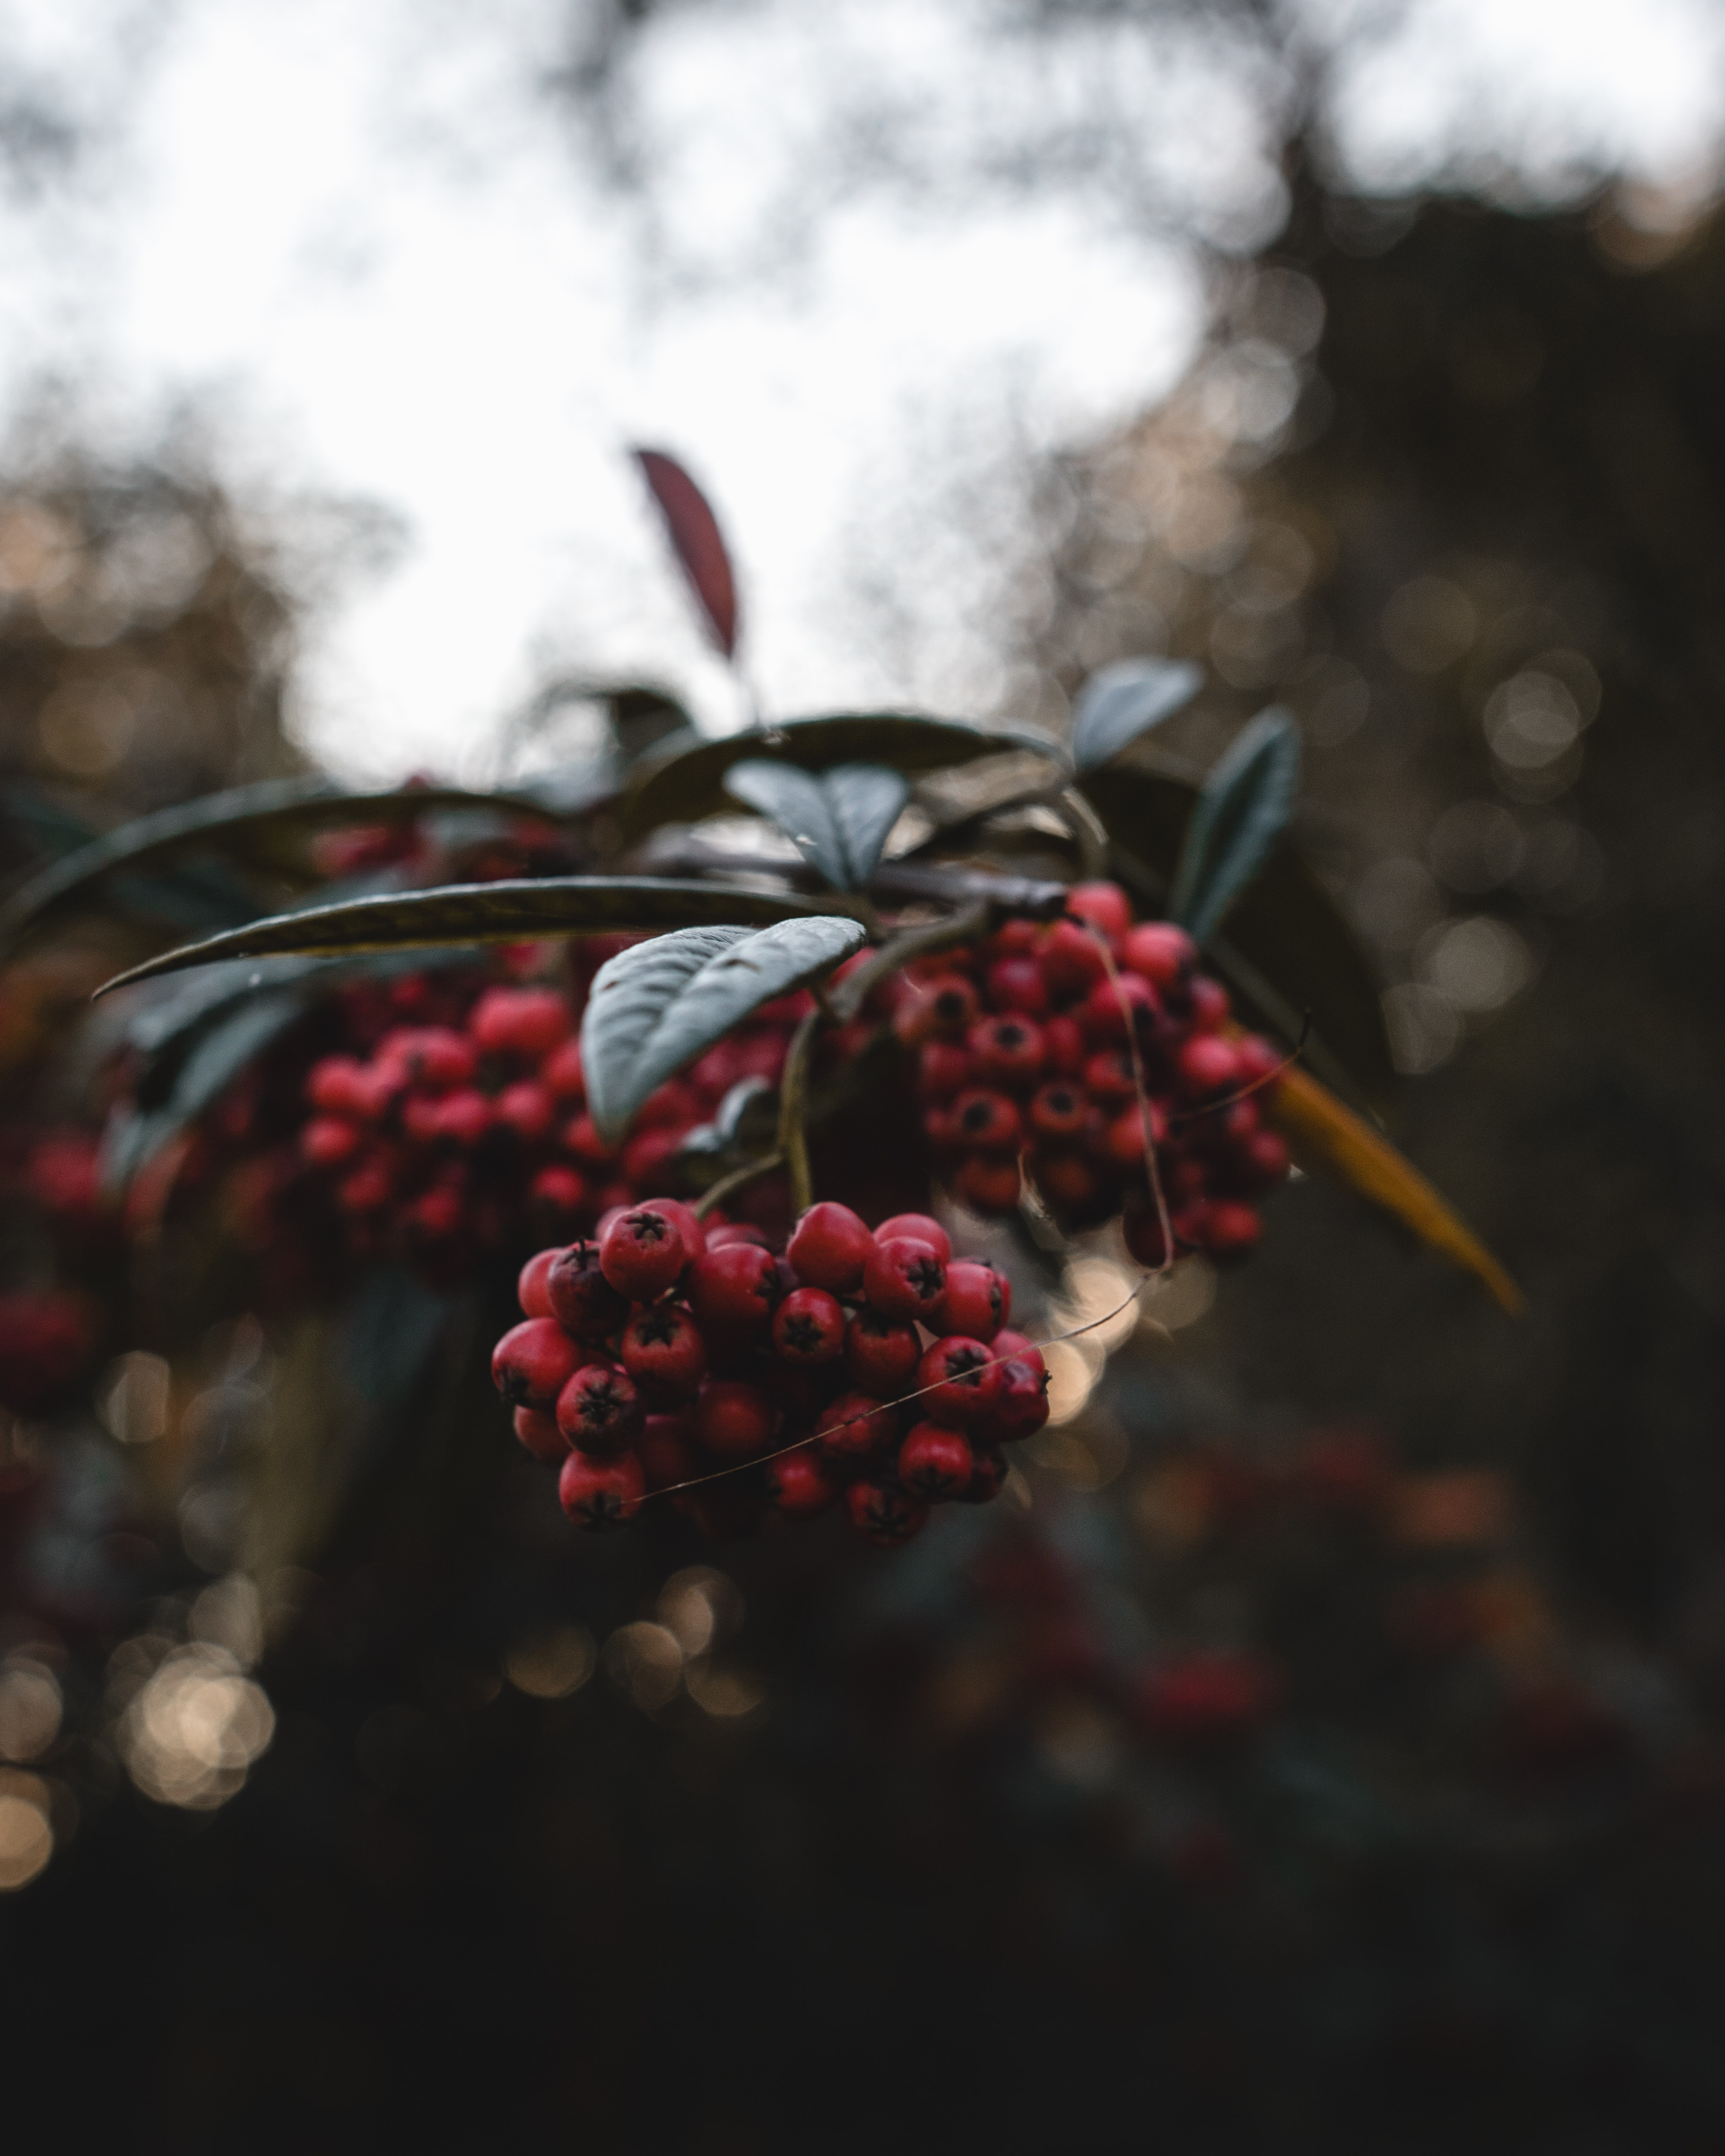 selective focus photography of holly berries